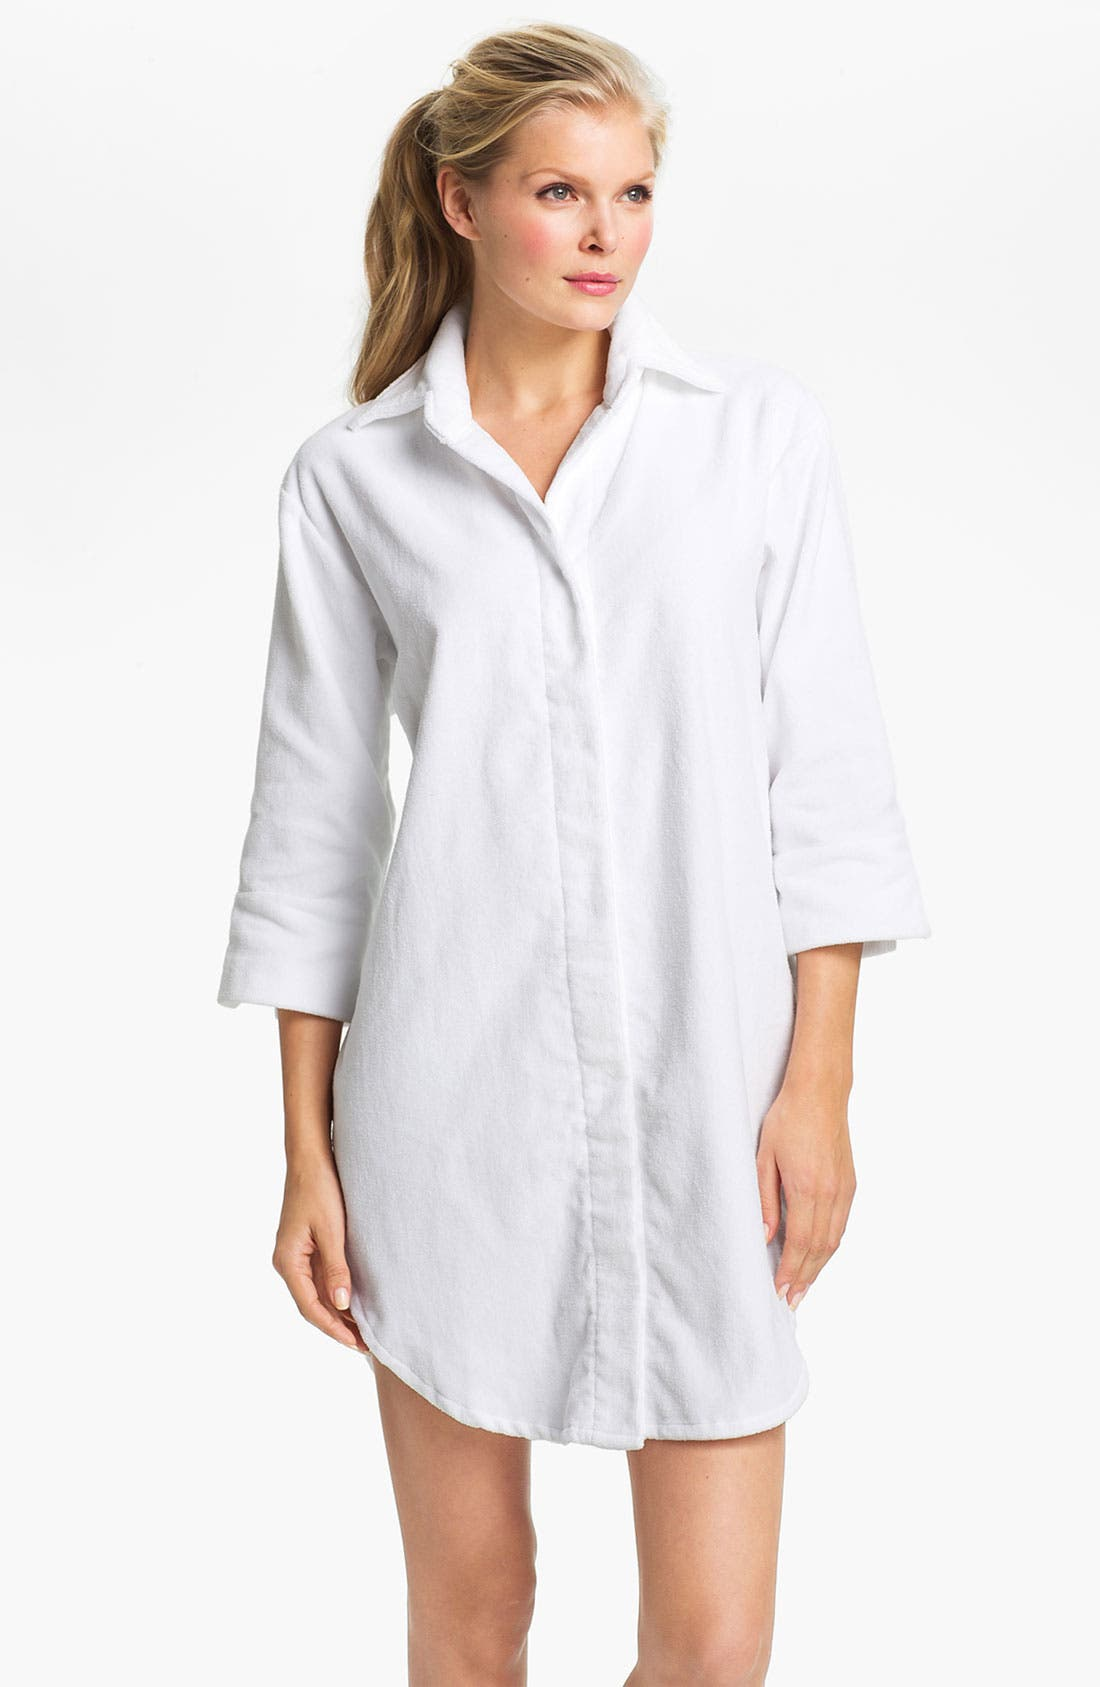 Alternate Image 1 Selected - Waterworks Studio Bath Shirt (Online Only)